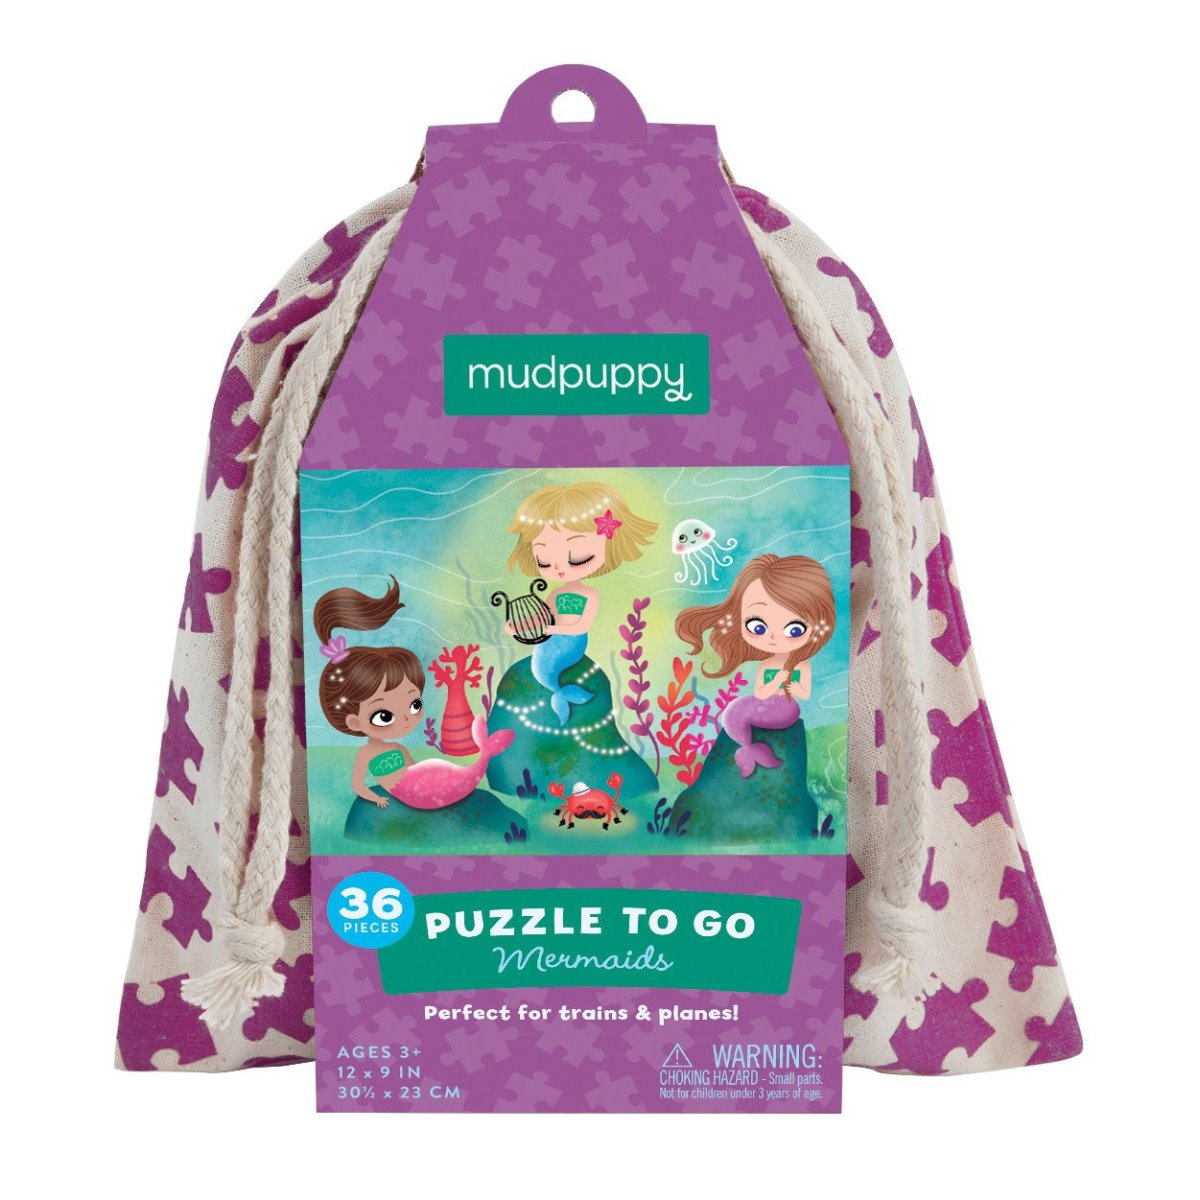 Mudpuppy - Puzzle To Go Mermaid